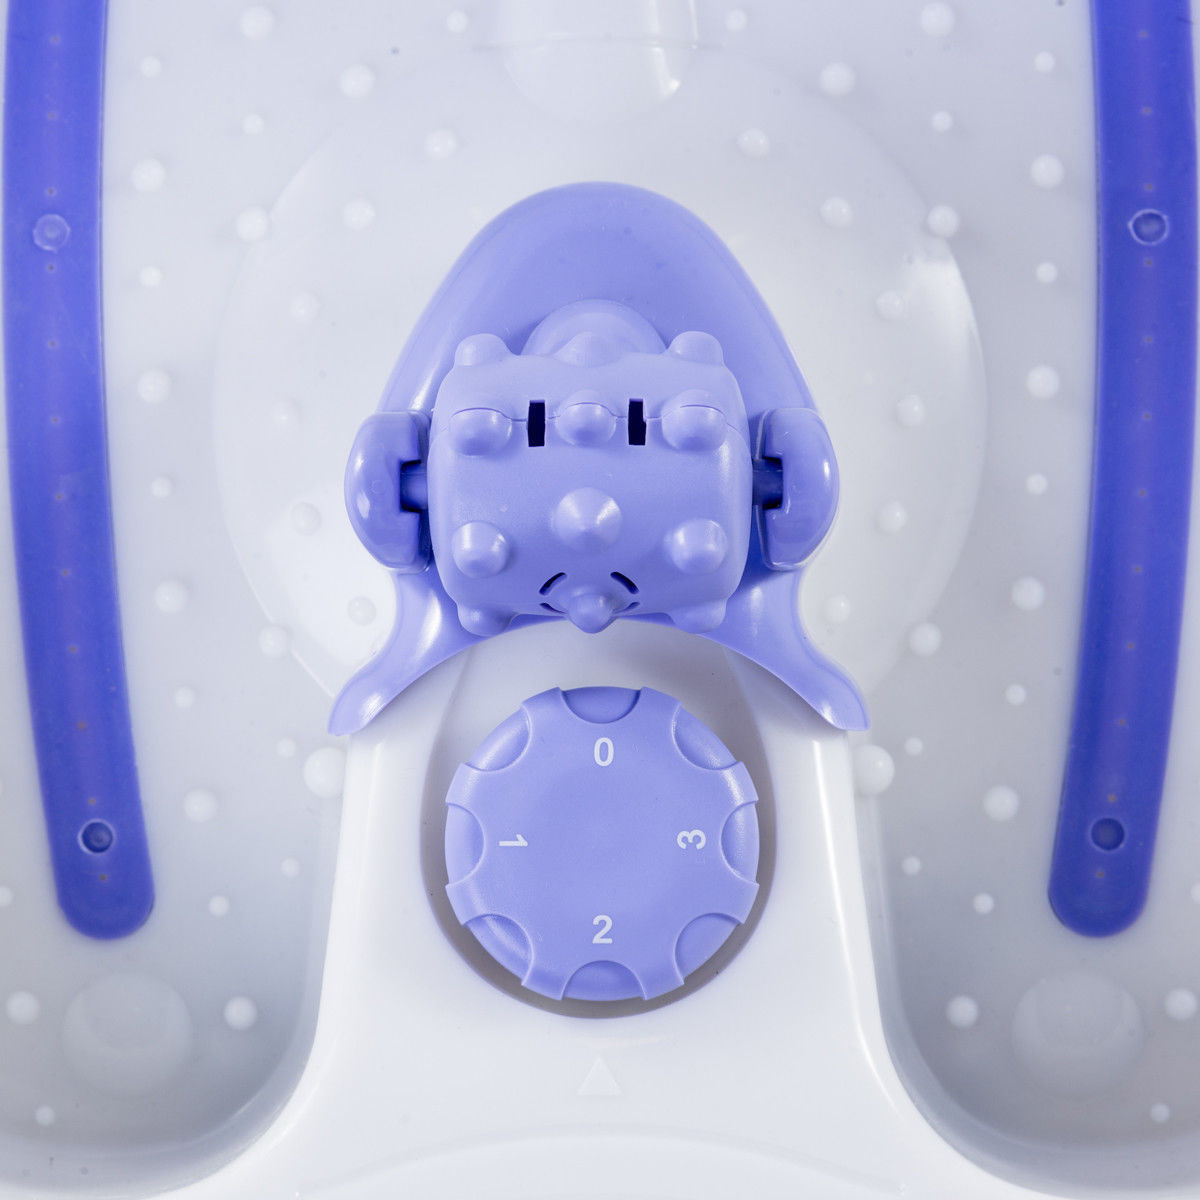 Costway Electrical Foot Basin Tub Point Massage Home Use Therapy Machine Health Heating - image 1 de 9